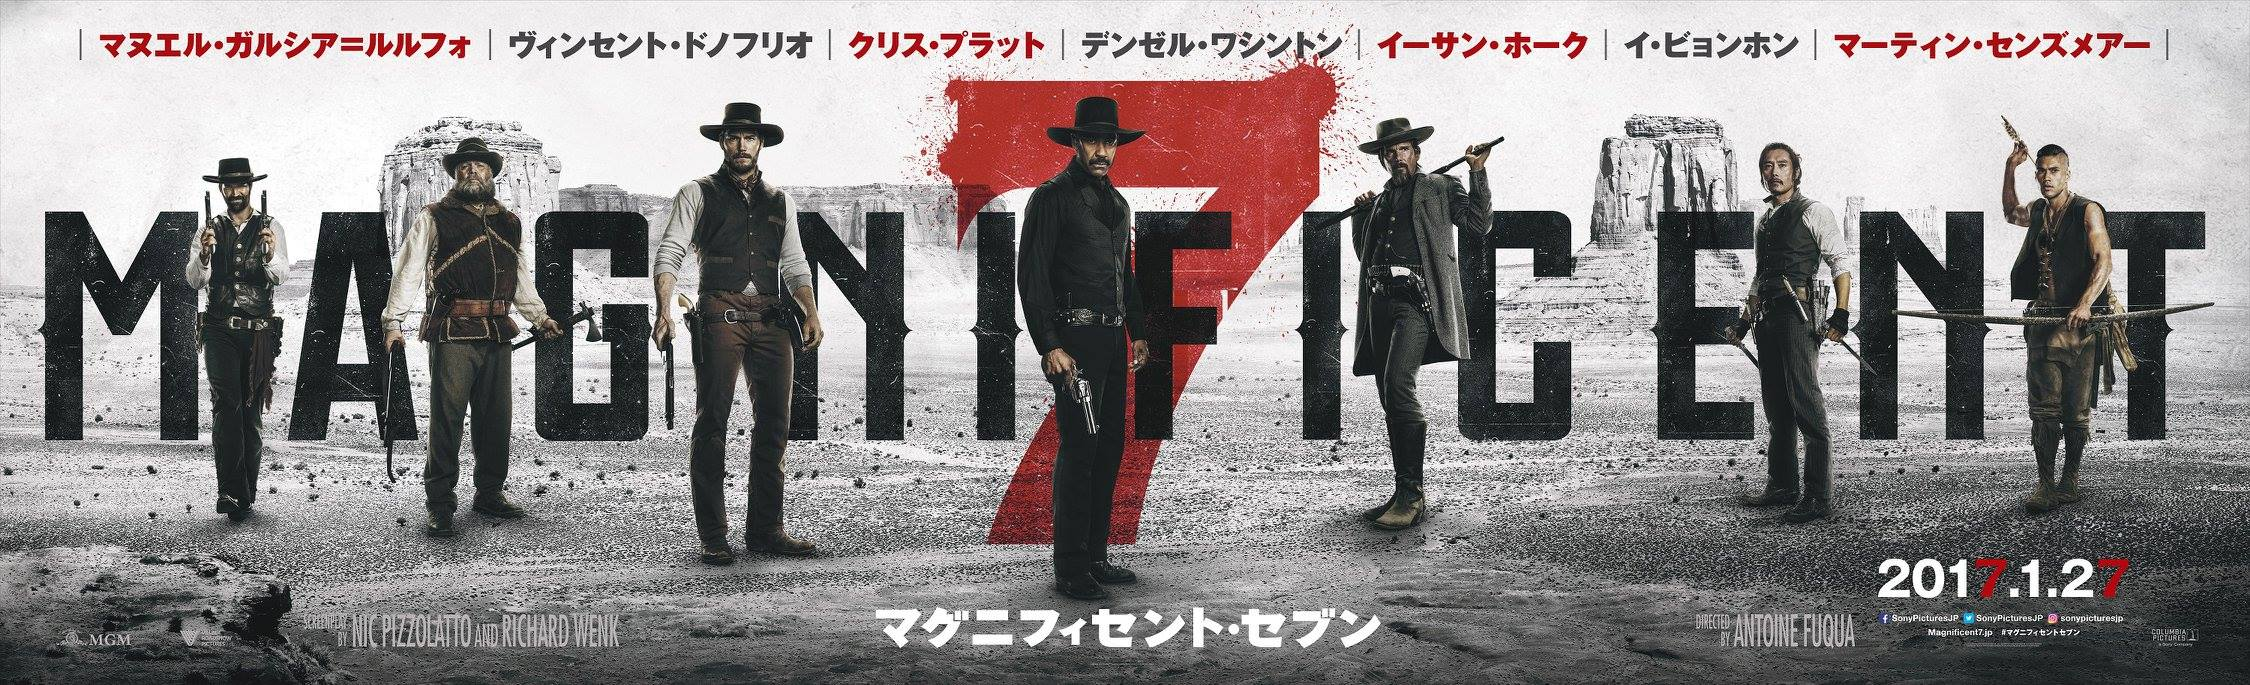 The-Magnificent-Seven_poster_goldposter_com_5.jpg